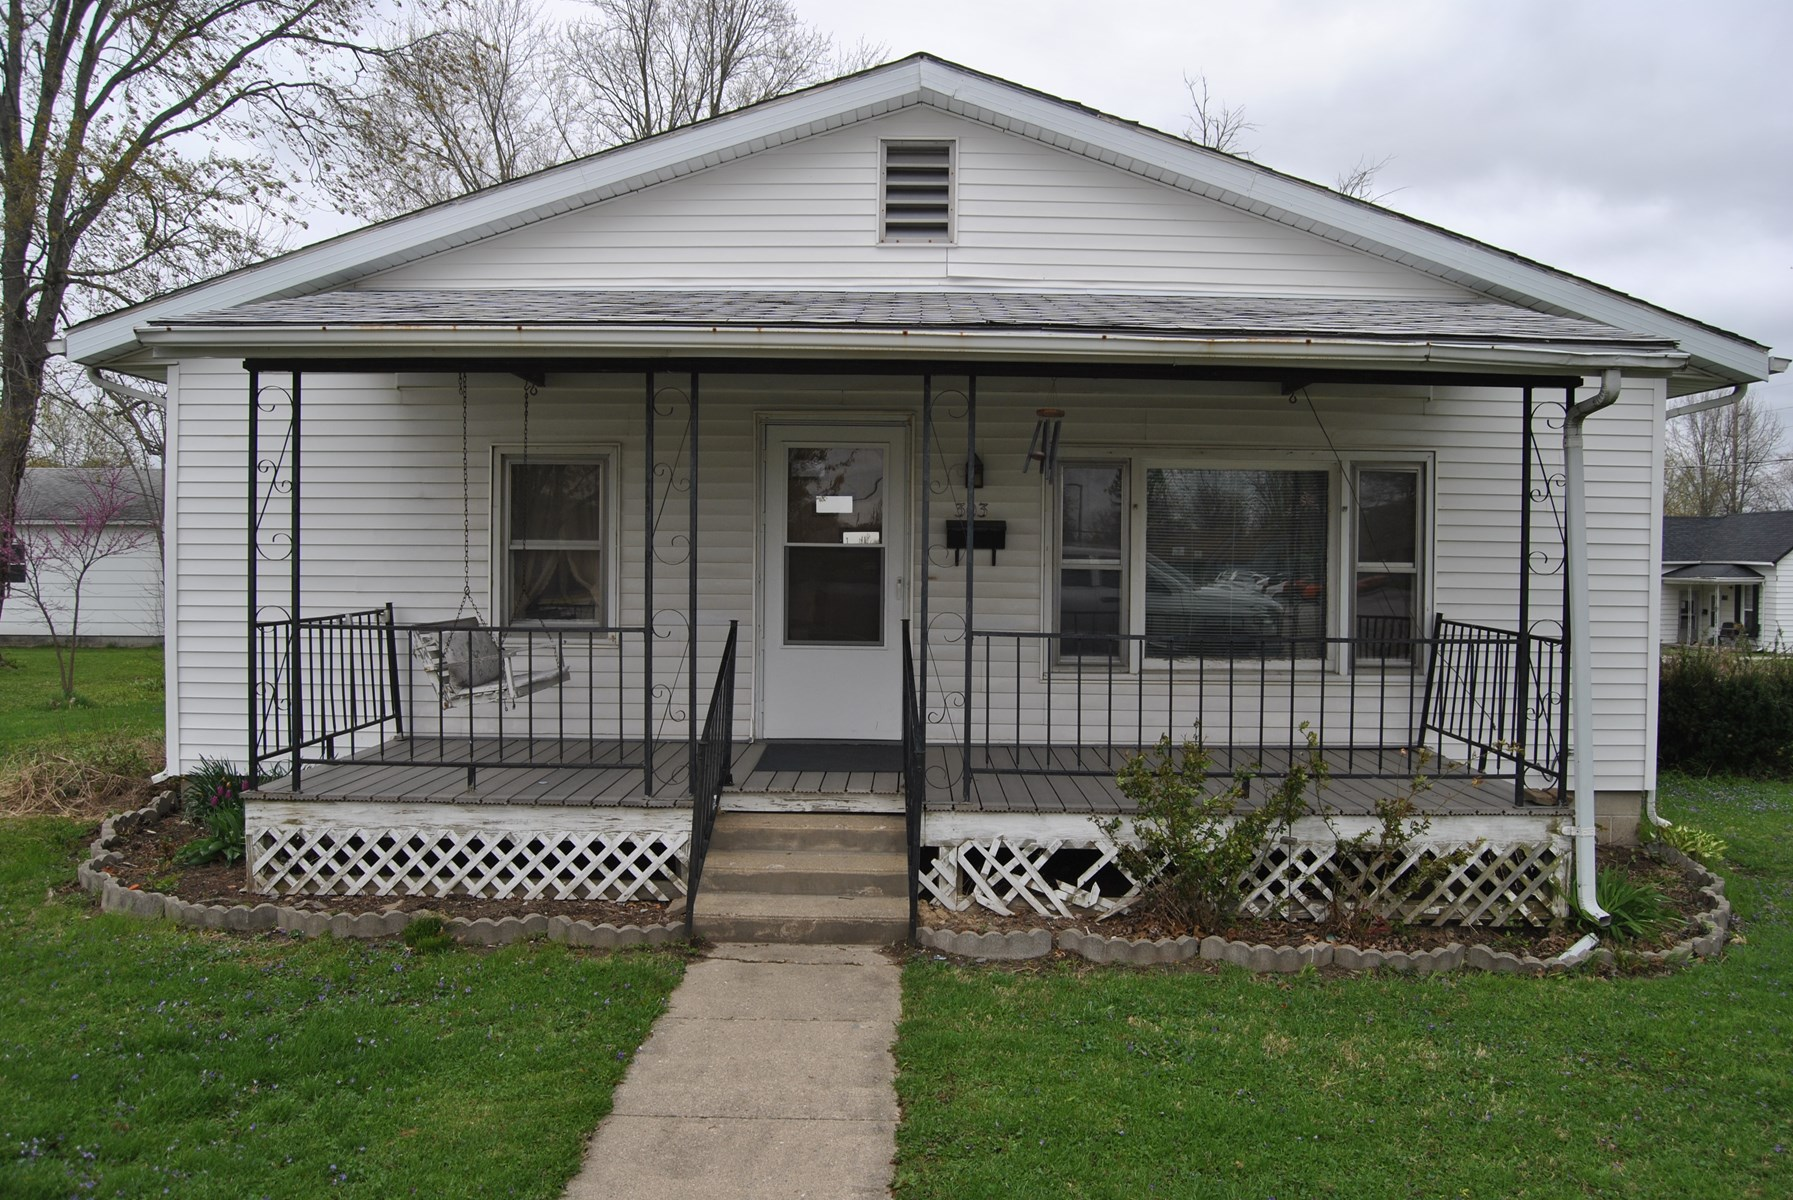 4 Bedroom, 2 Bath Home on Corner Lot, Marshall, IL